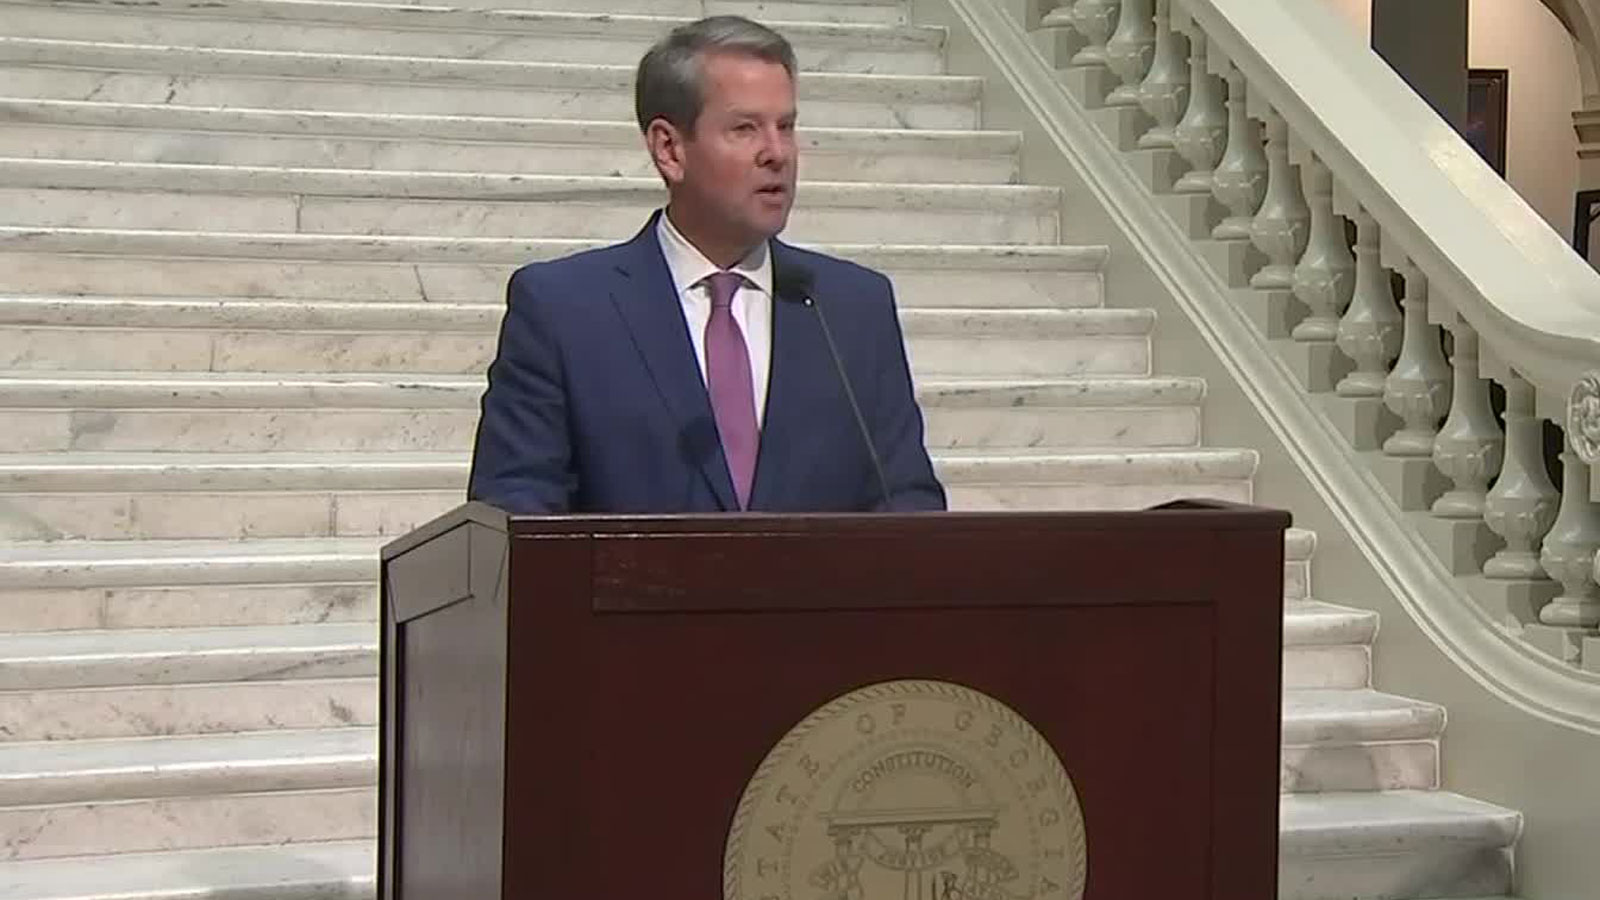 Georgia Gov. Brian Kemp speaks at a news conference in Atlanta on October 7.